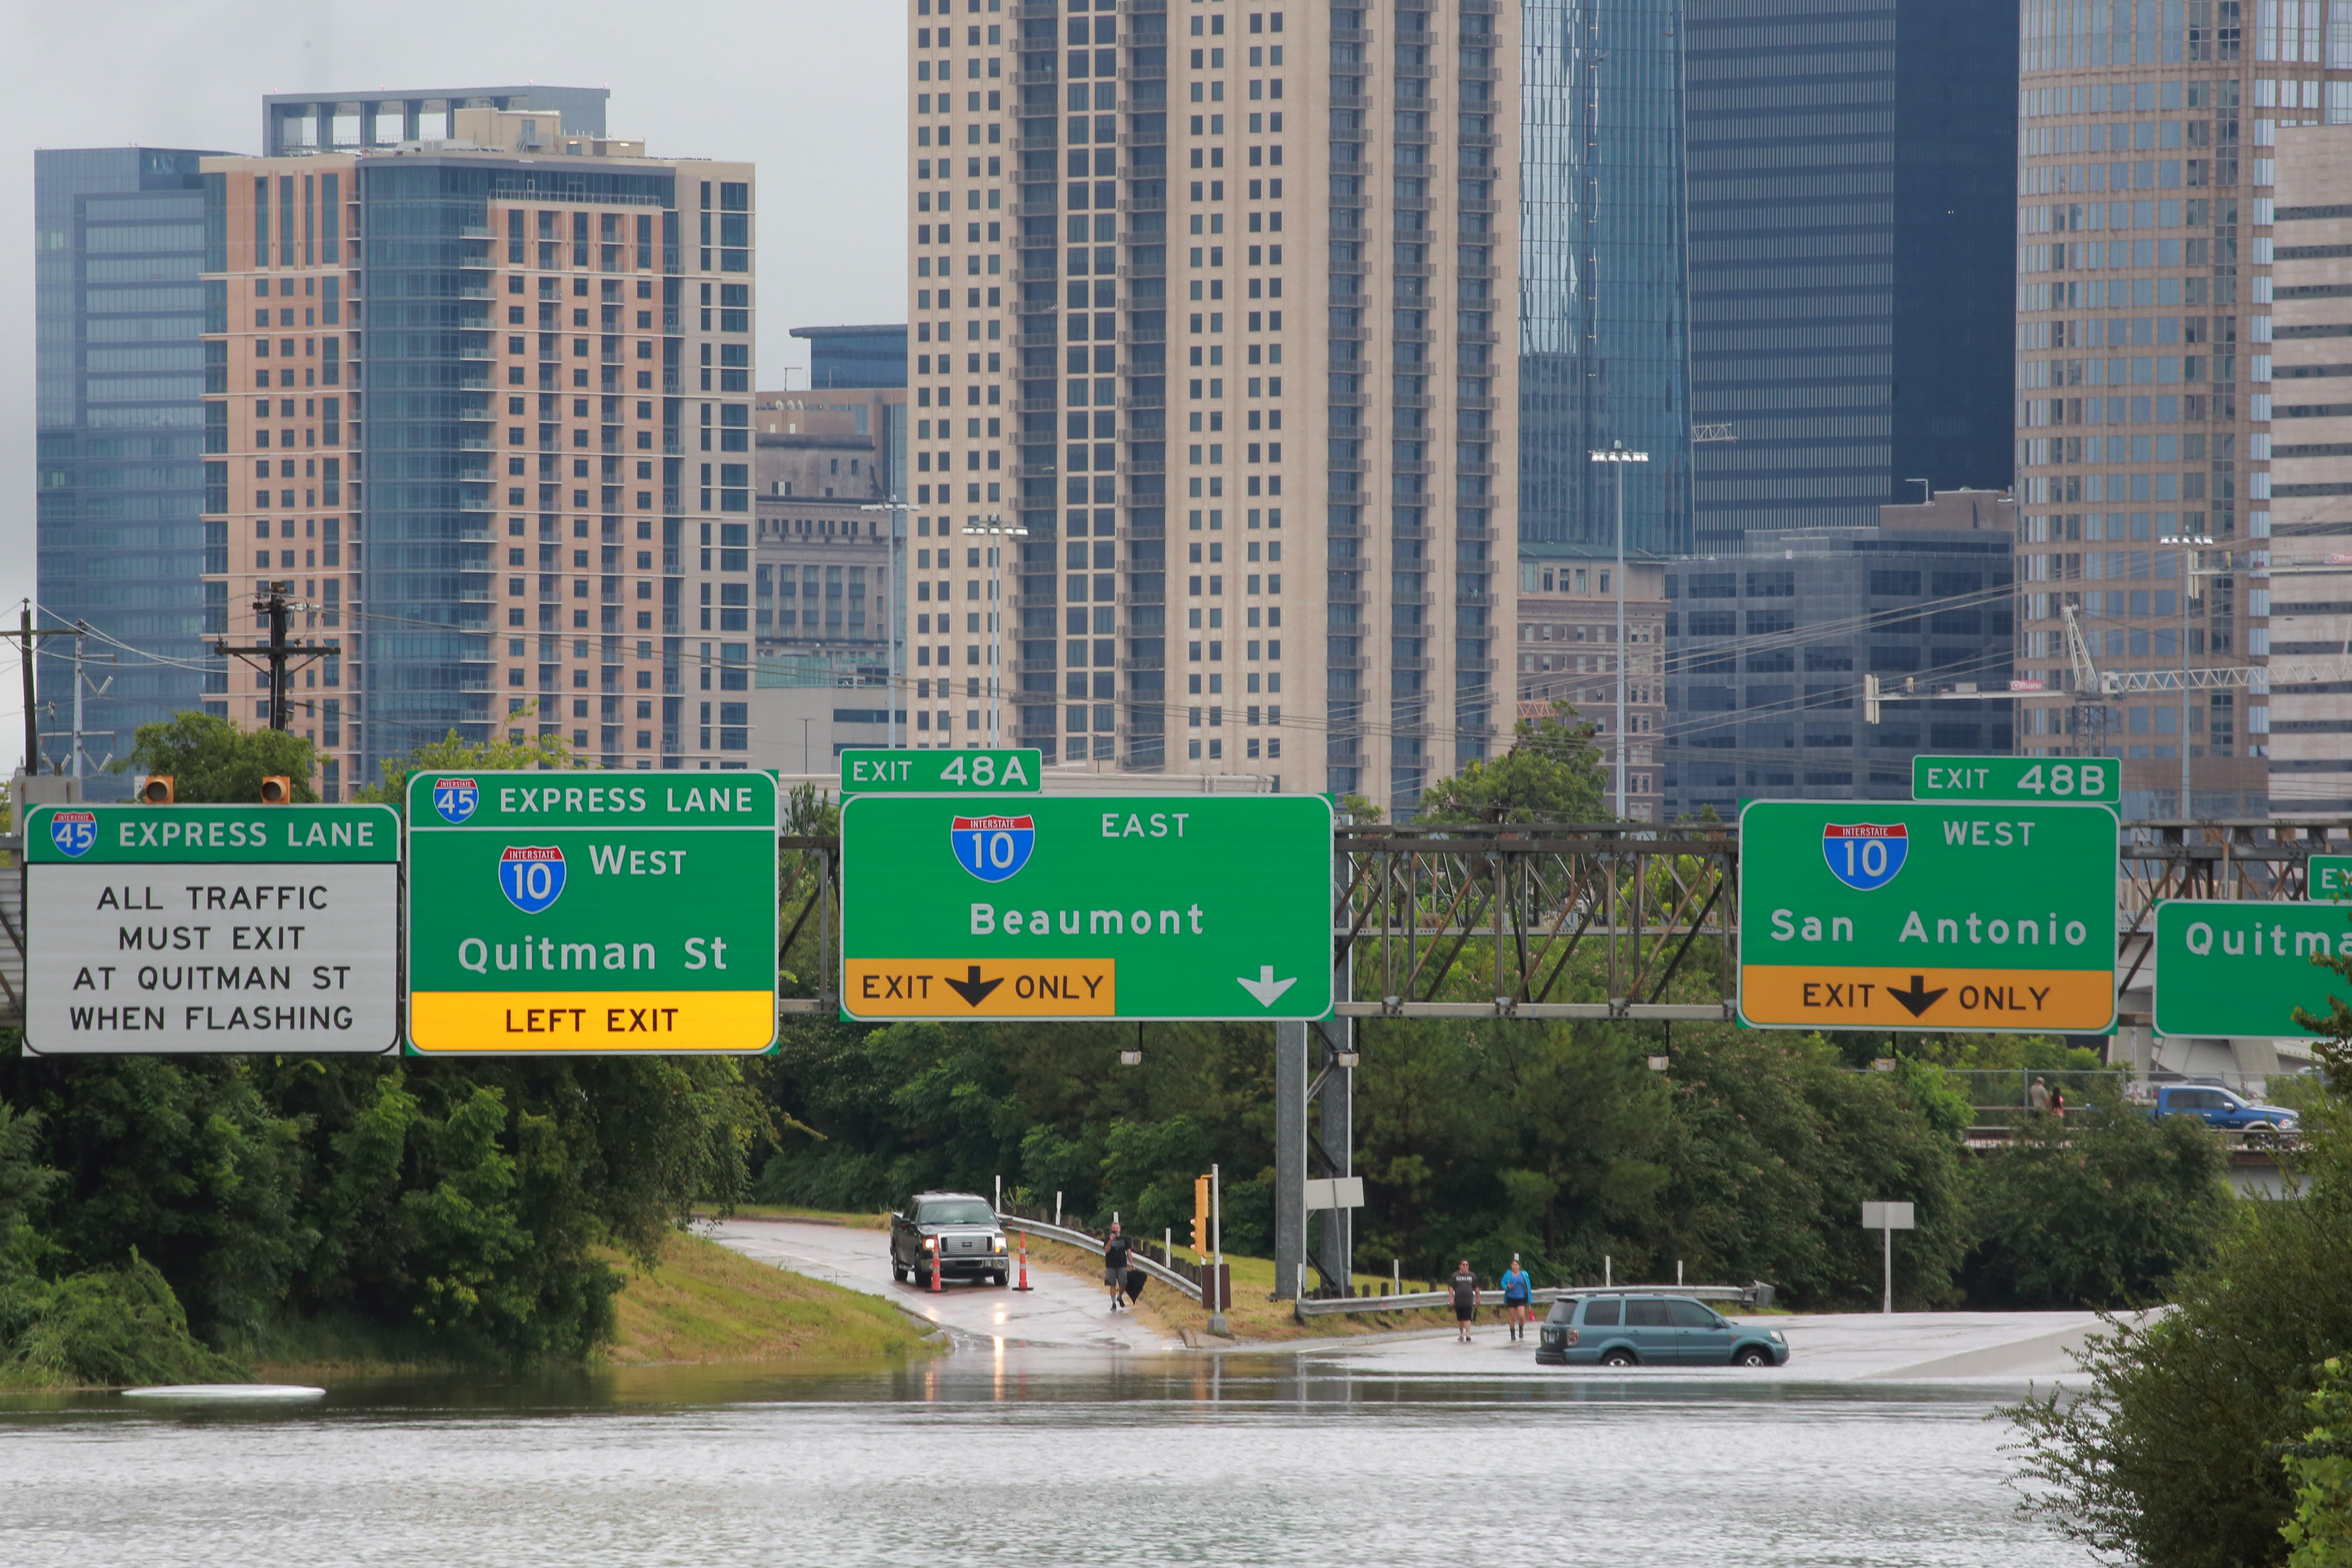 Interstate highway 45 is submerged in Houston. (REUTERS/Richard Carson)